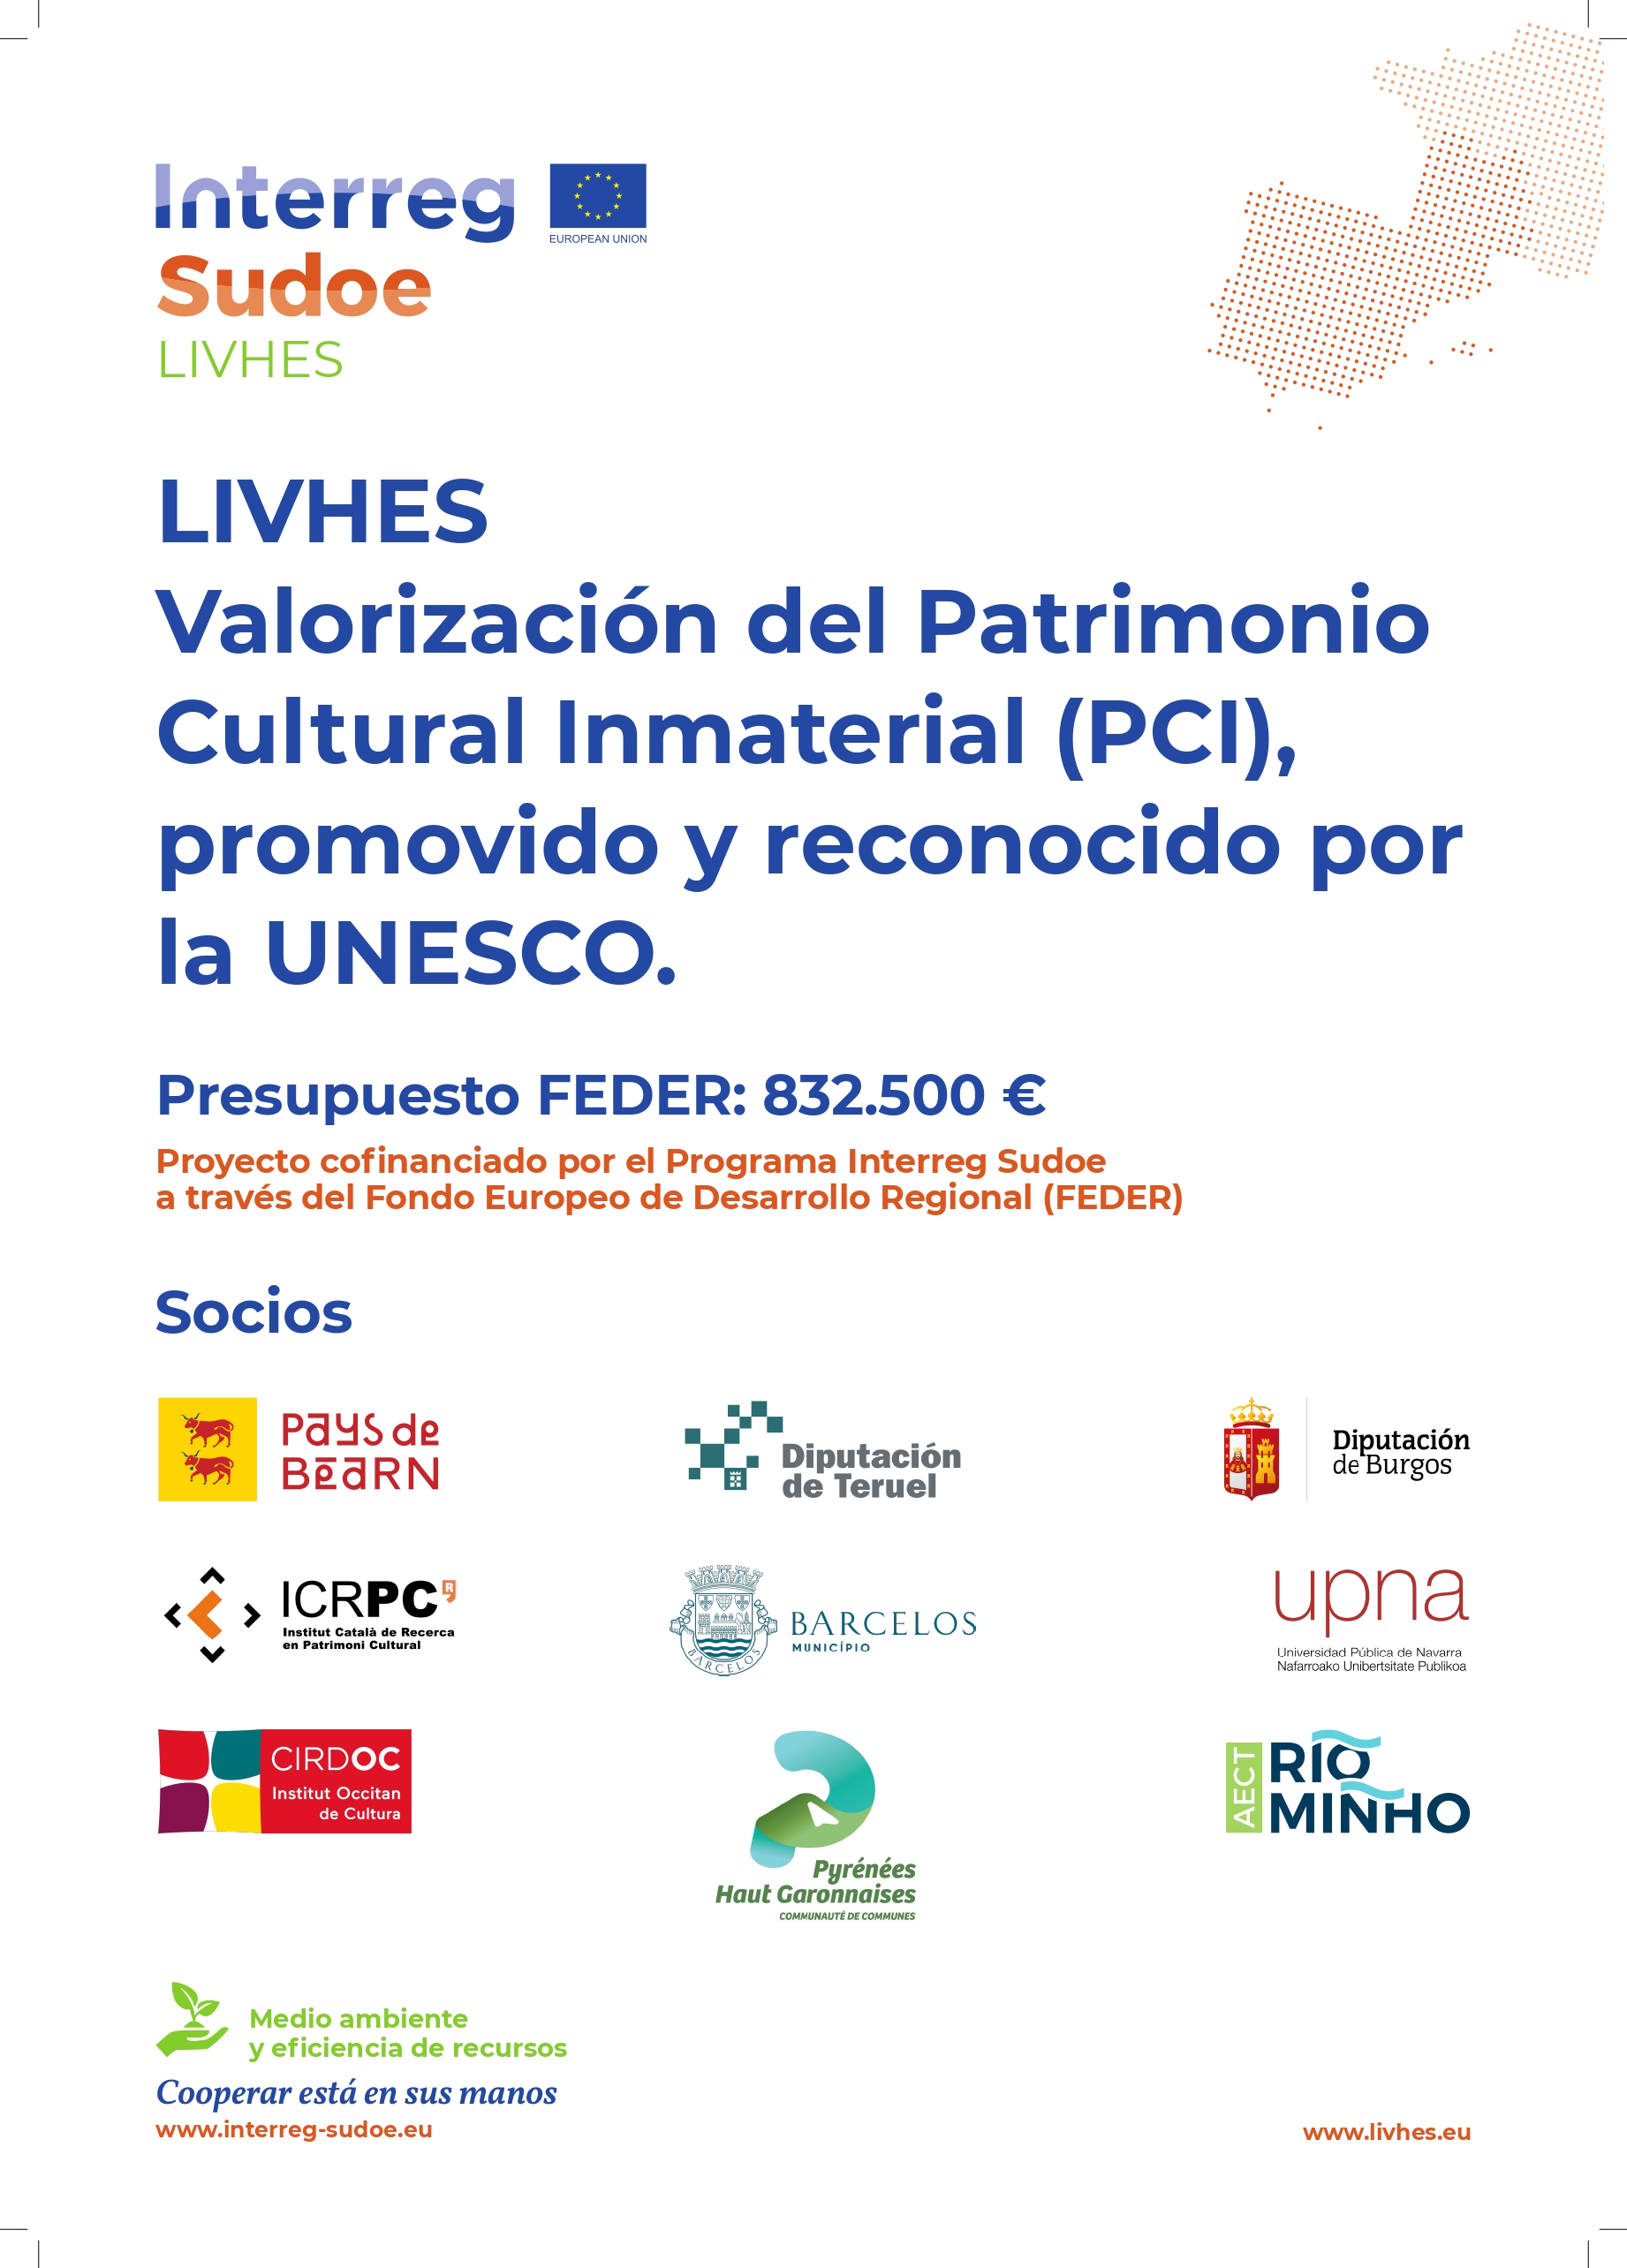 LIVHES. Living heritage for sustainable development